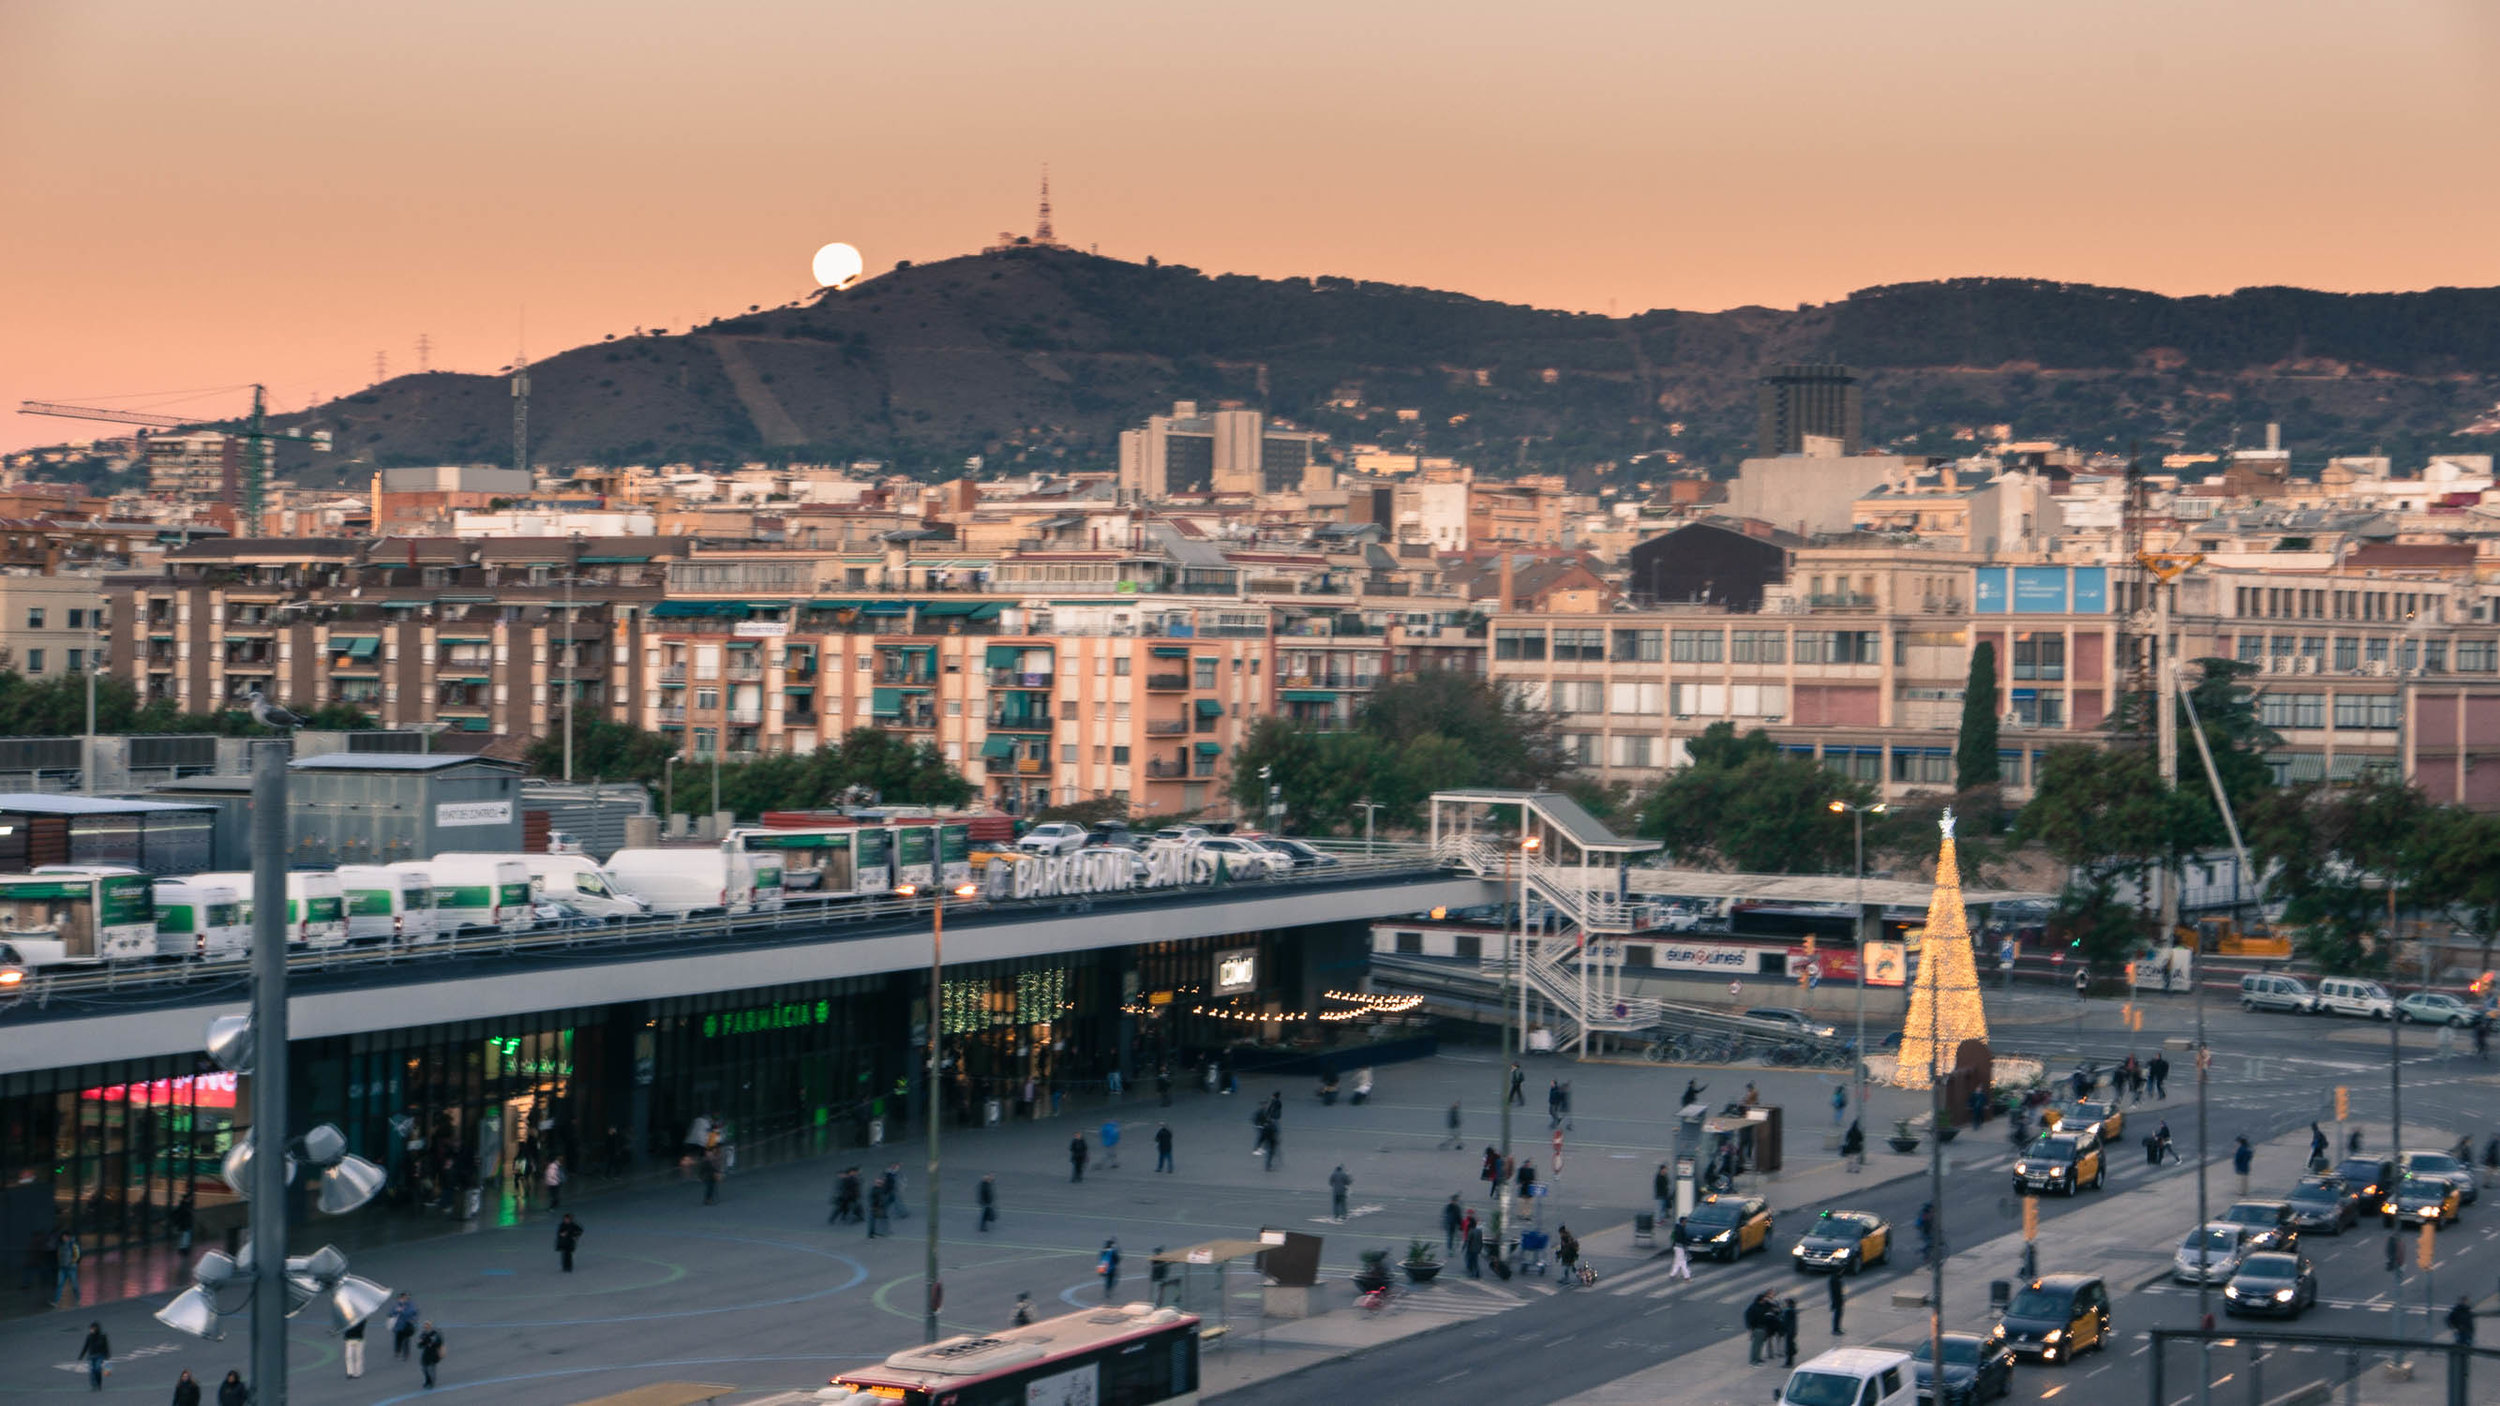 Early morning moon setting over the Barcelona Train Station in December.